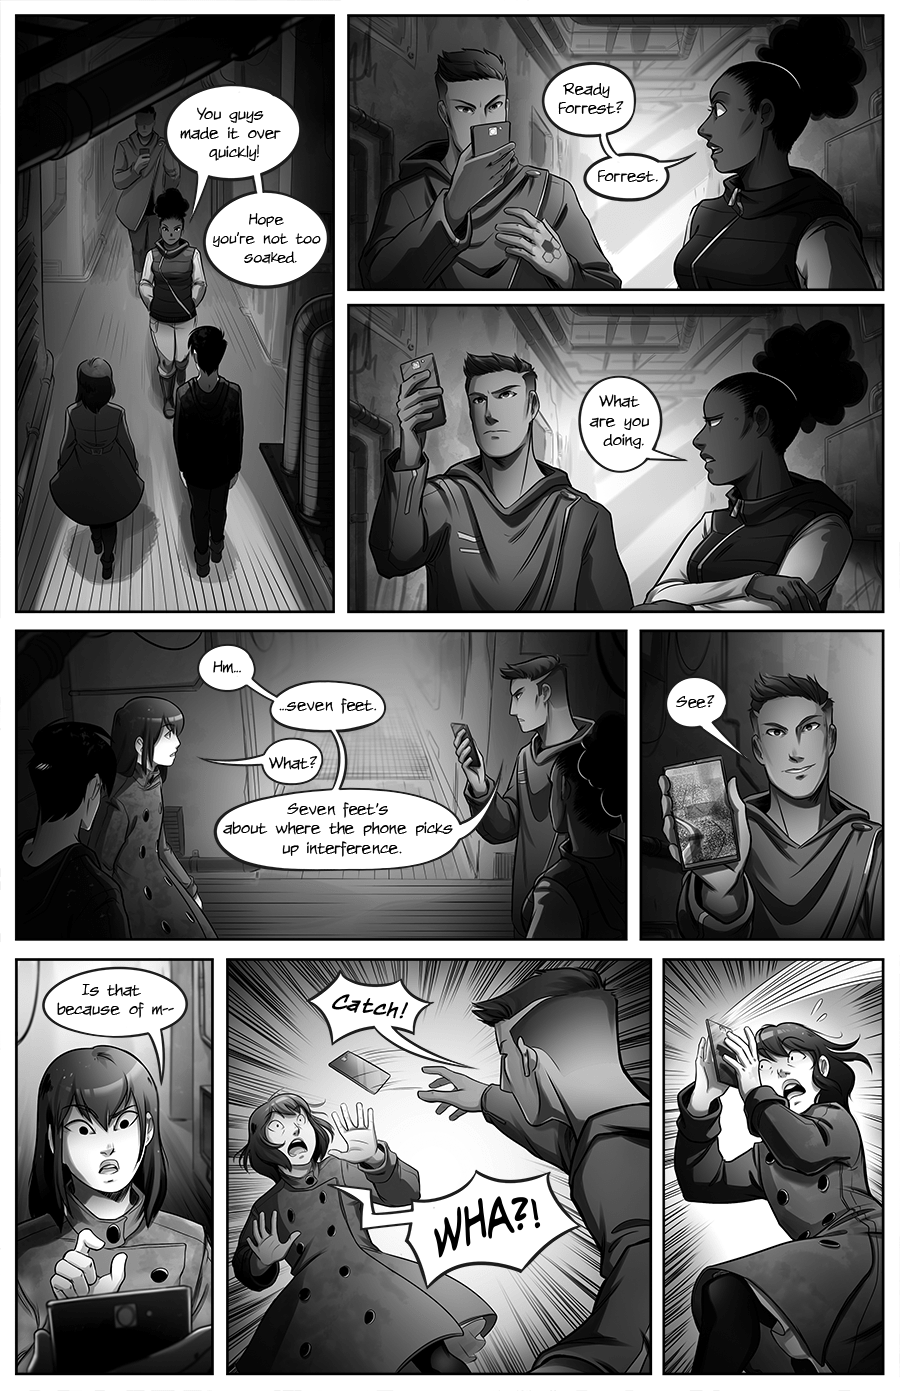 Ch 4 Page 7